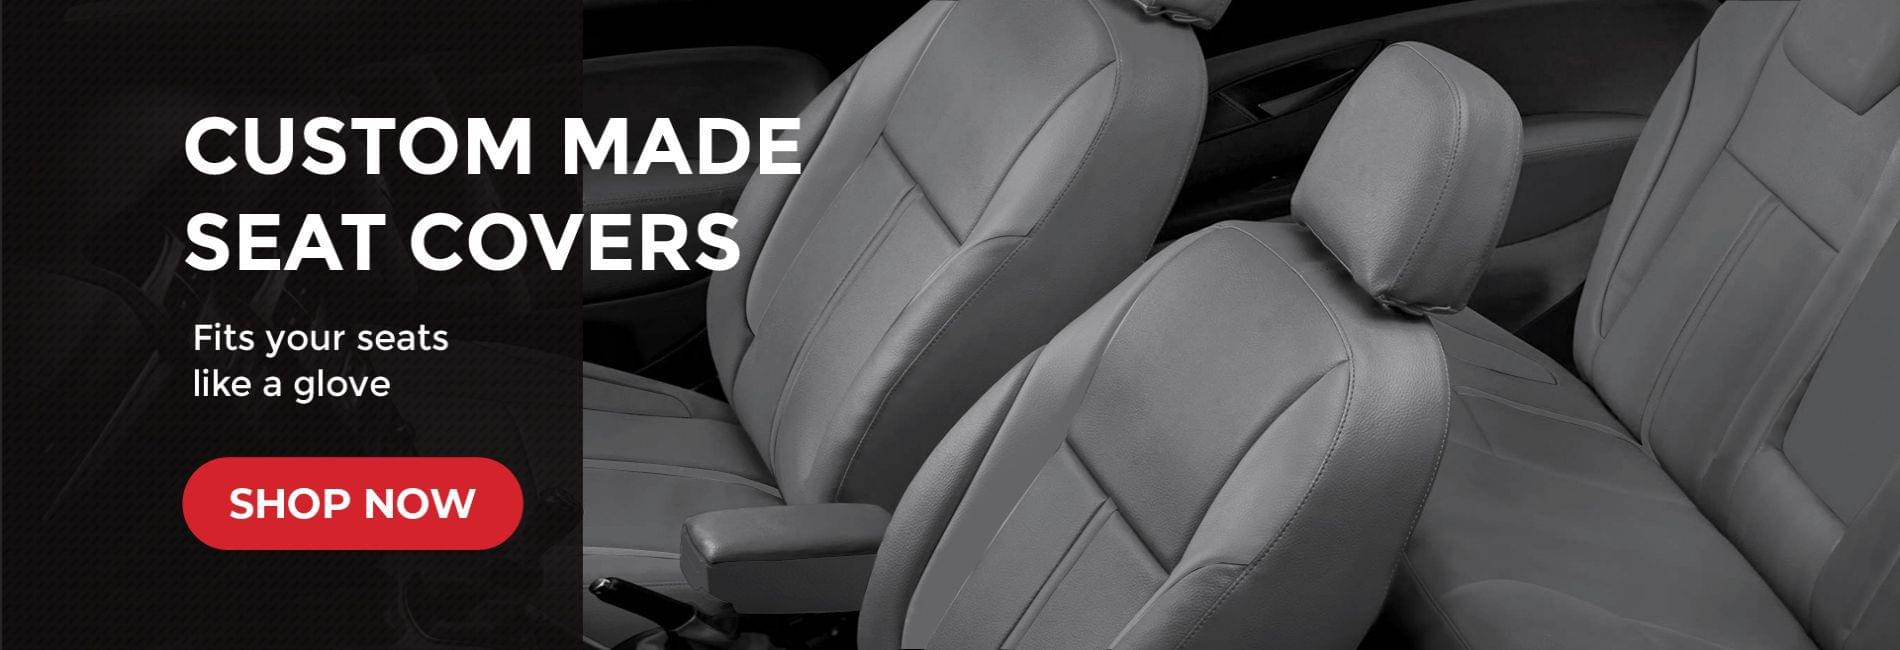 /fabric-page/leatherette-car-seat-covers